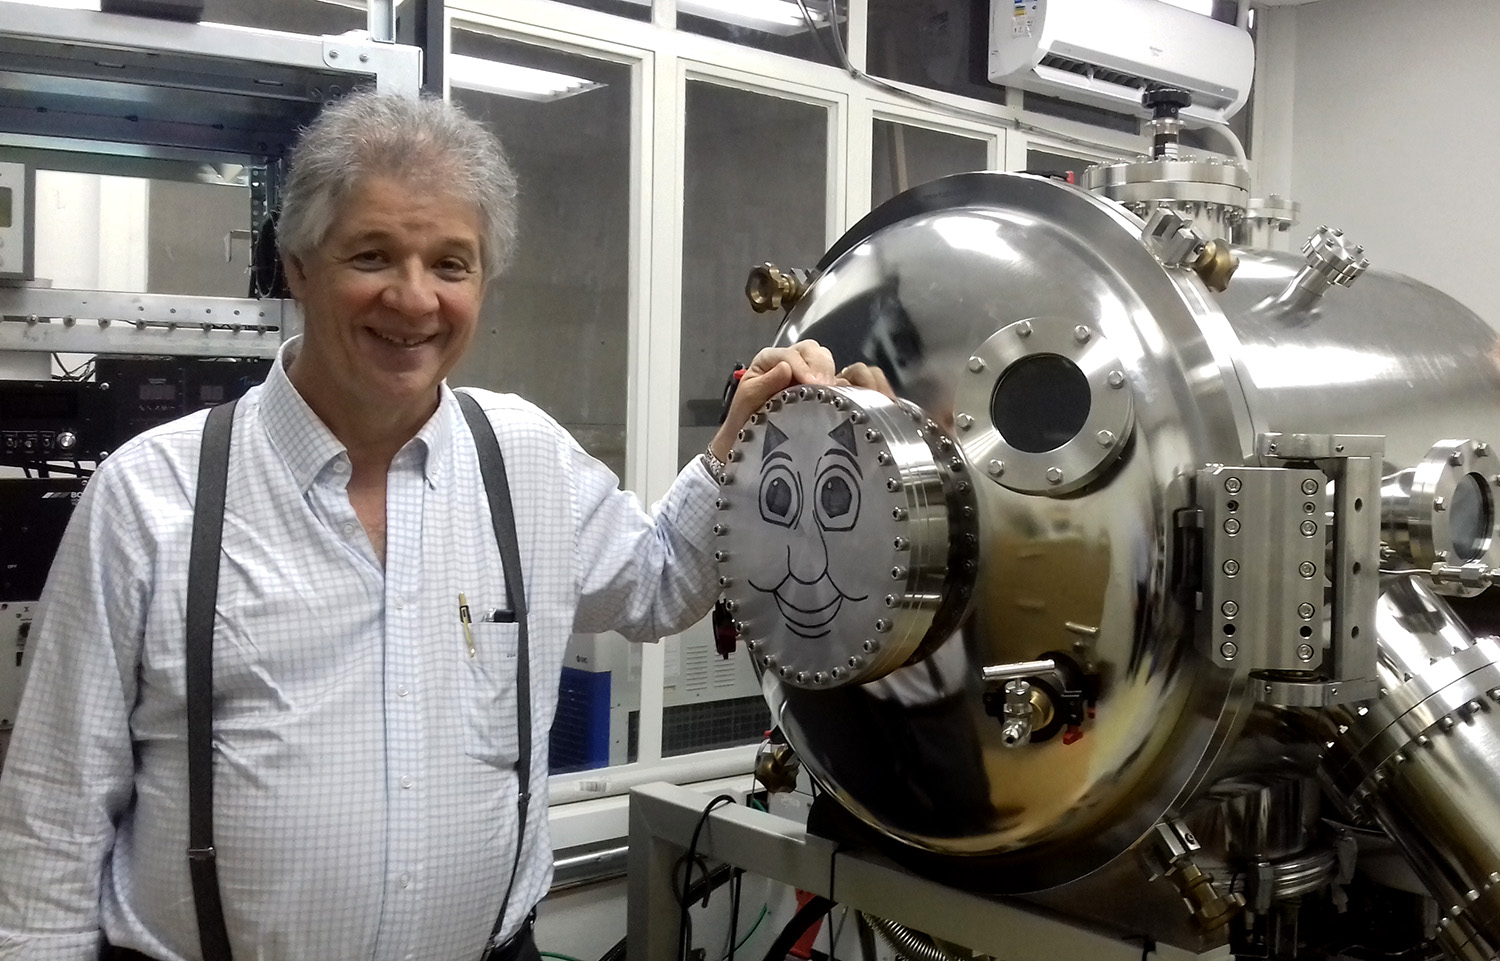 Prof. José Diniz Chubaci - IBAD – Ion Beam Assisted Deposition (Deposição por Feixes Iônicos Assistida) - Instituto de Física da USP